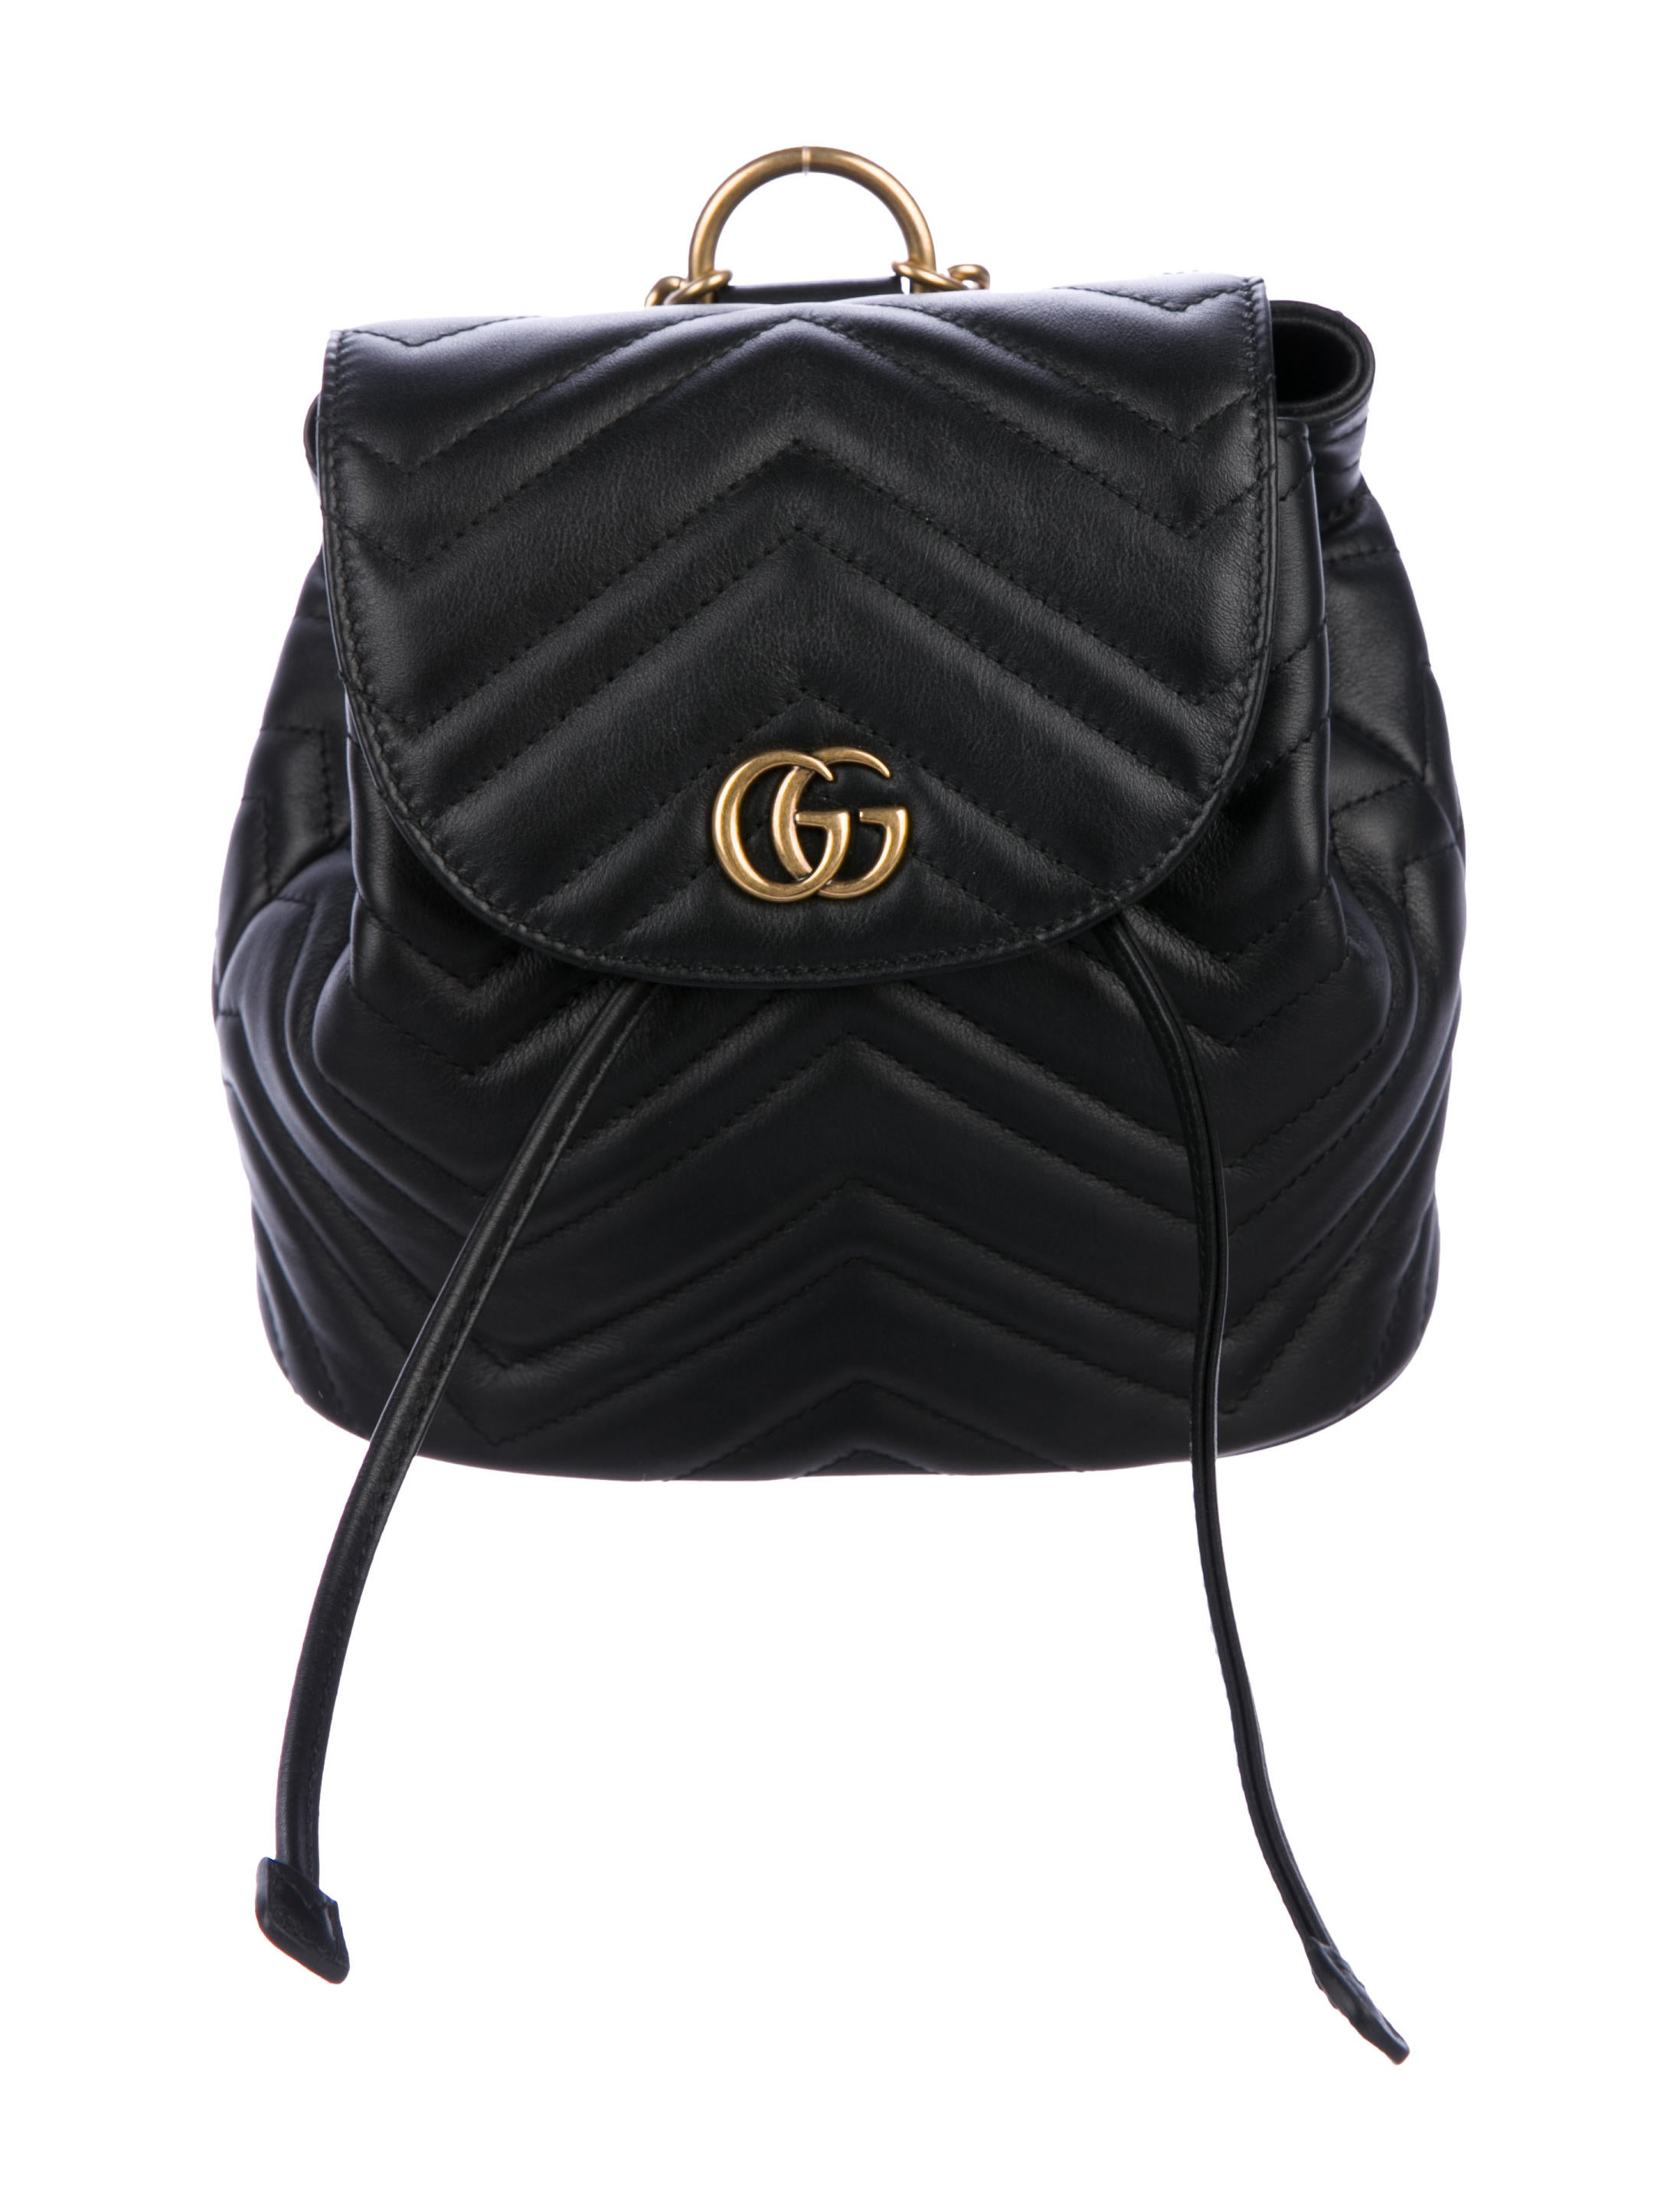 1064442e2 Black Gucci Backpack With Gold Chain | Building Materials Bargain Center